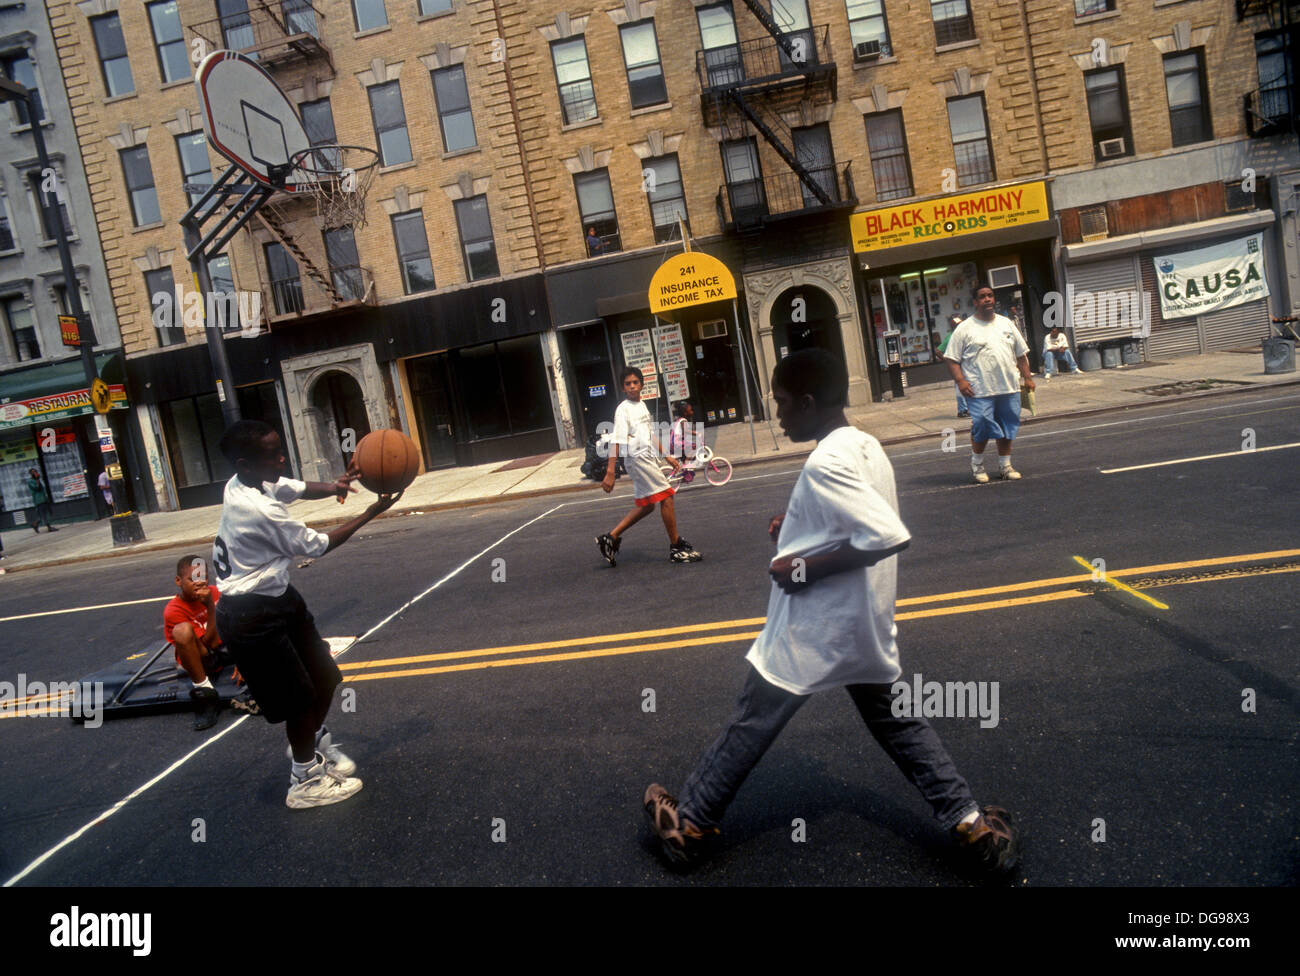 New York, NY - August 1994 - Children play ball during a street fair in West Harlem. Rally to Stop the Violence. Stock Photo